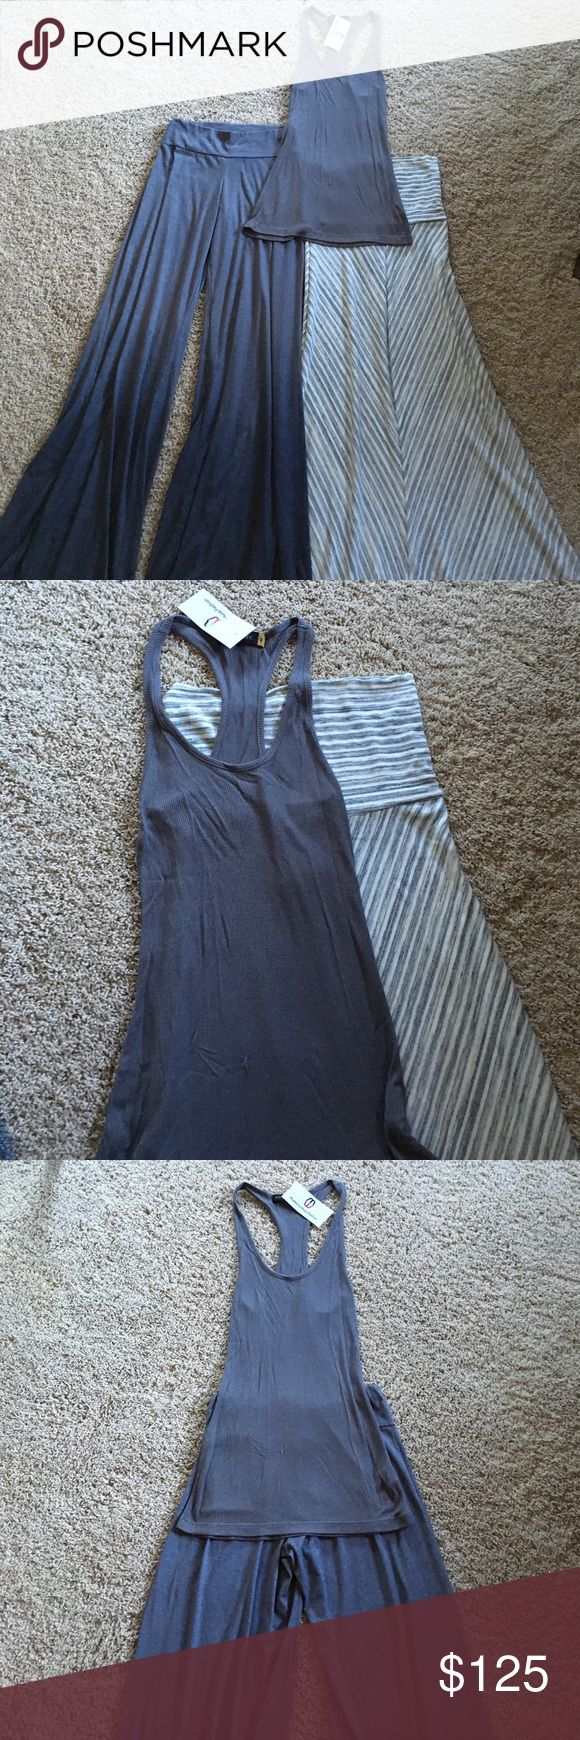 NWT Bundled Saint Grace pant, Maxi Skirt, and Tank NWT, tags attached and all three items, never worn. Saint Grace women's Carol pants in gorgeous Seal grey ombre wash. Saint Grace McKenzie tank Seal grey. Saint Grace chevron maxi skirt.  All three pair beautifully together.  Note, the Carrol pant is a little bit more of a heather gray compared to tank. But it is in the same color scheme so it still can be worn together without it looking matchy matchy 🤗.  There on a cute print cardi or…